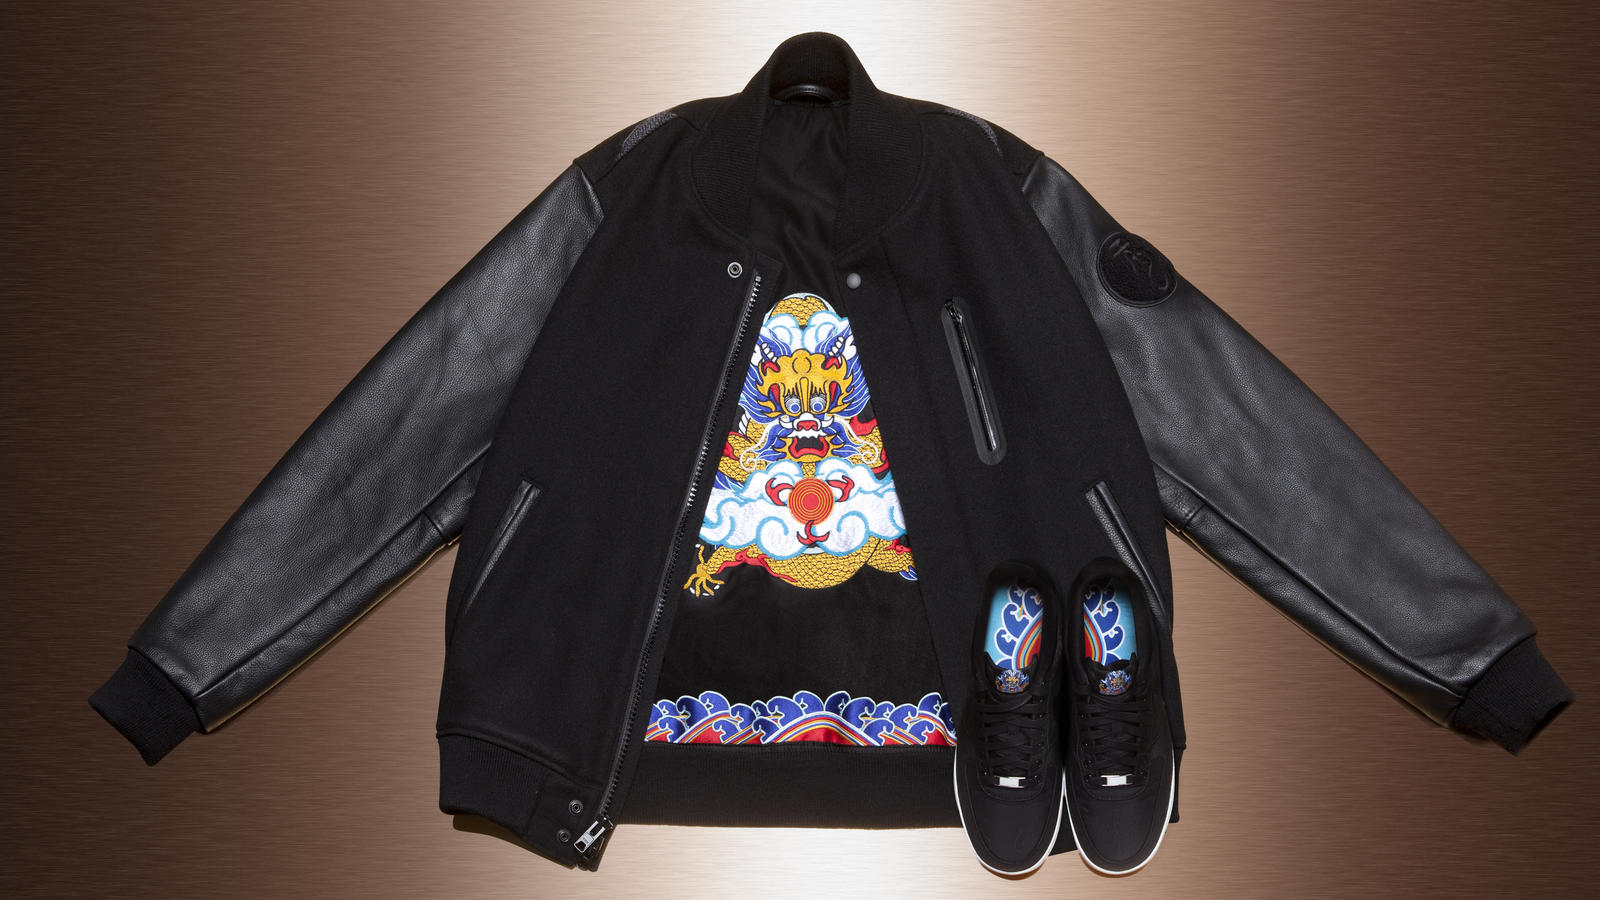 Introduces The Of News Nike Collection 'year Dragon' NwOX8Pn0k